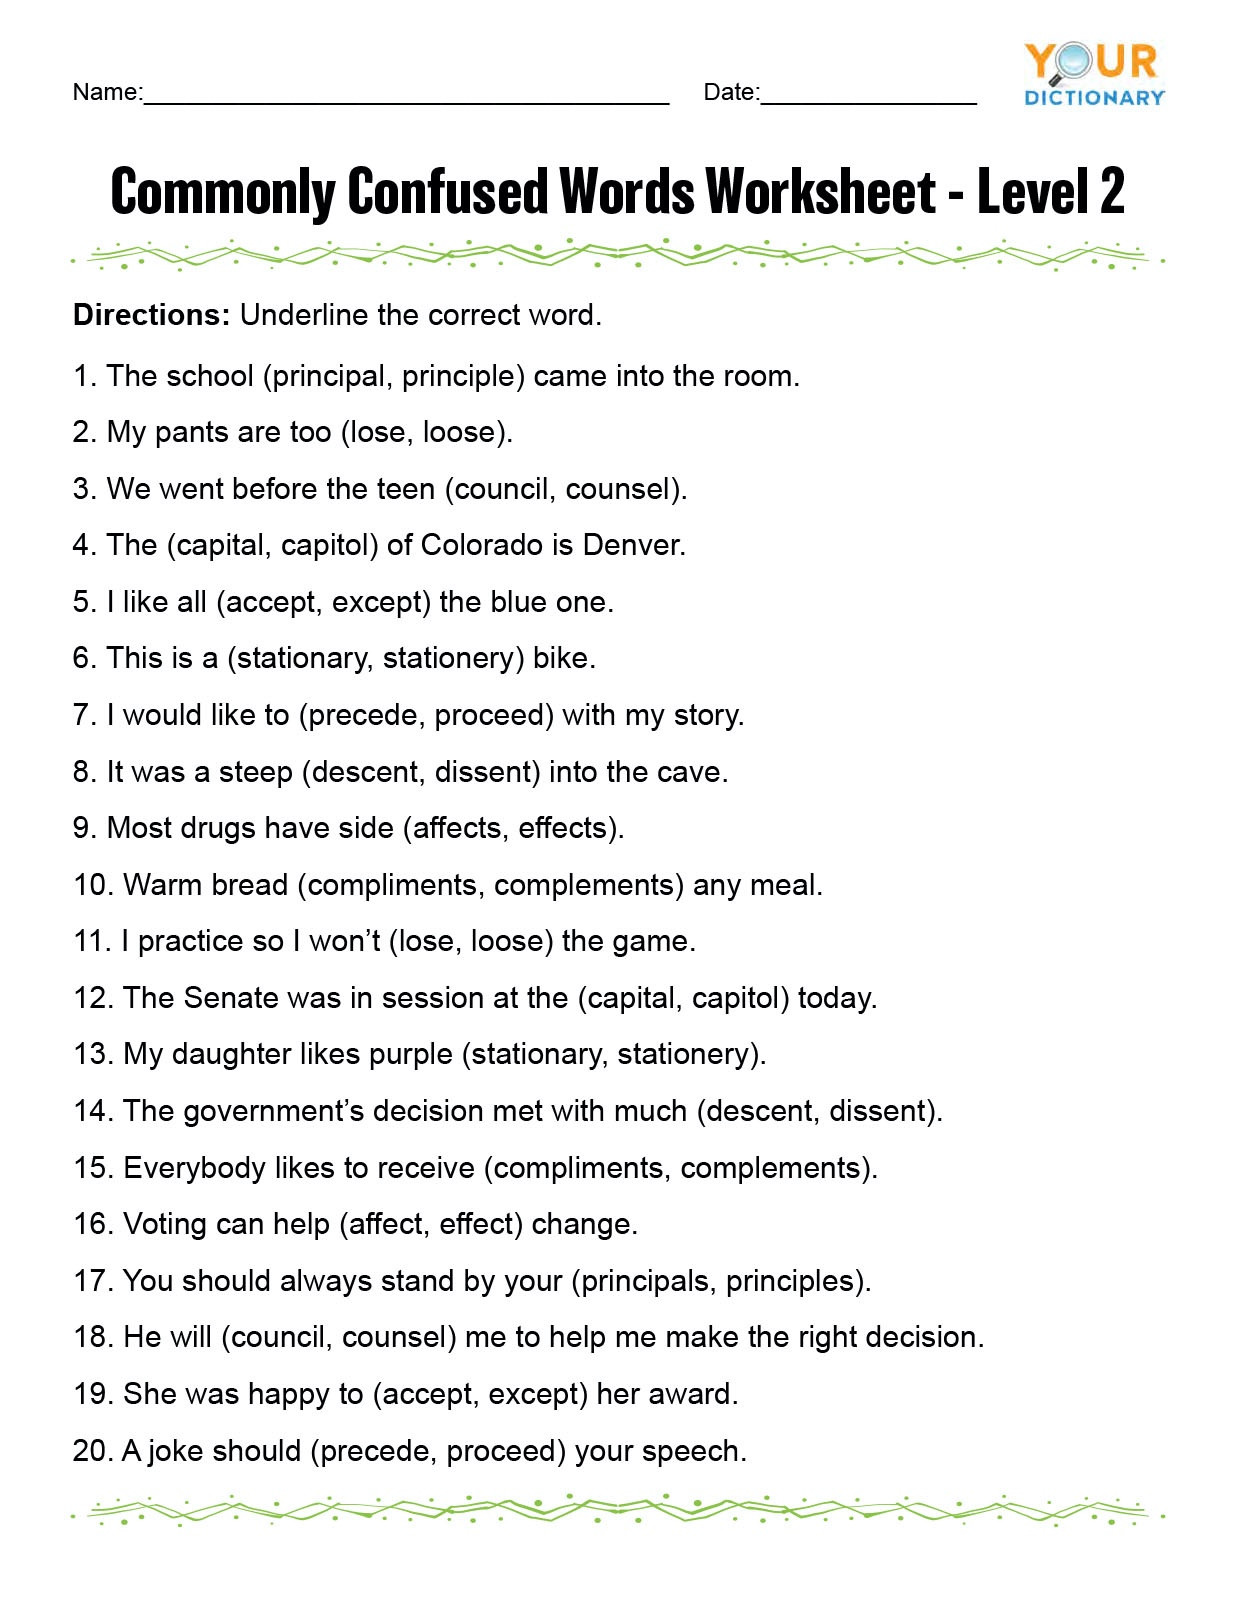 Homophone Worksheets 5th Grade Monly Confused Words Worksheet